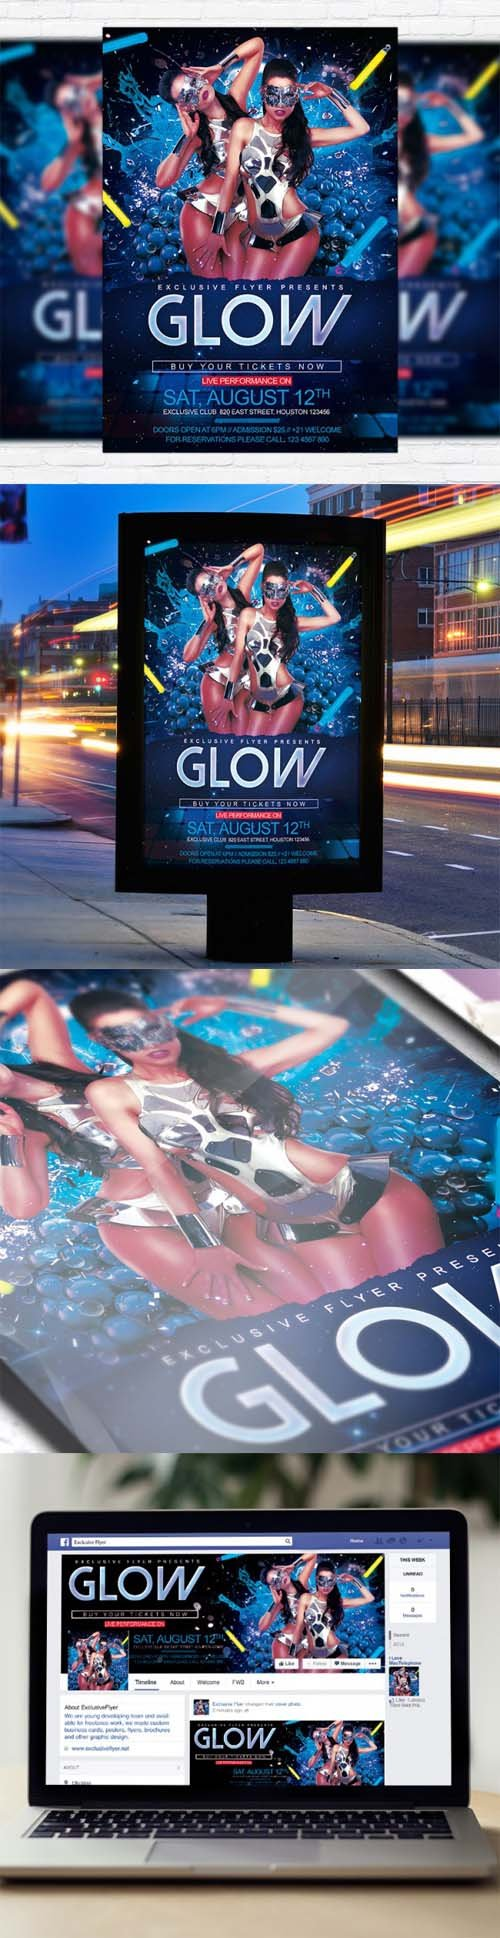 Flyer Template - Glow + Facebook Cover